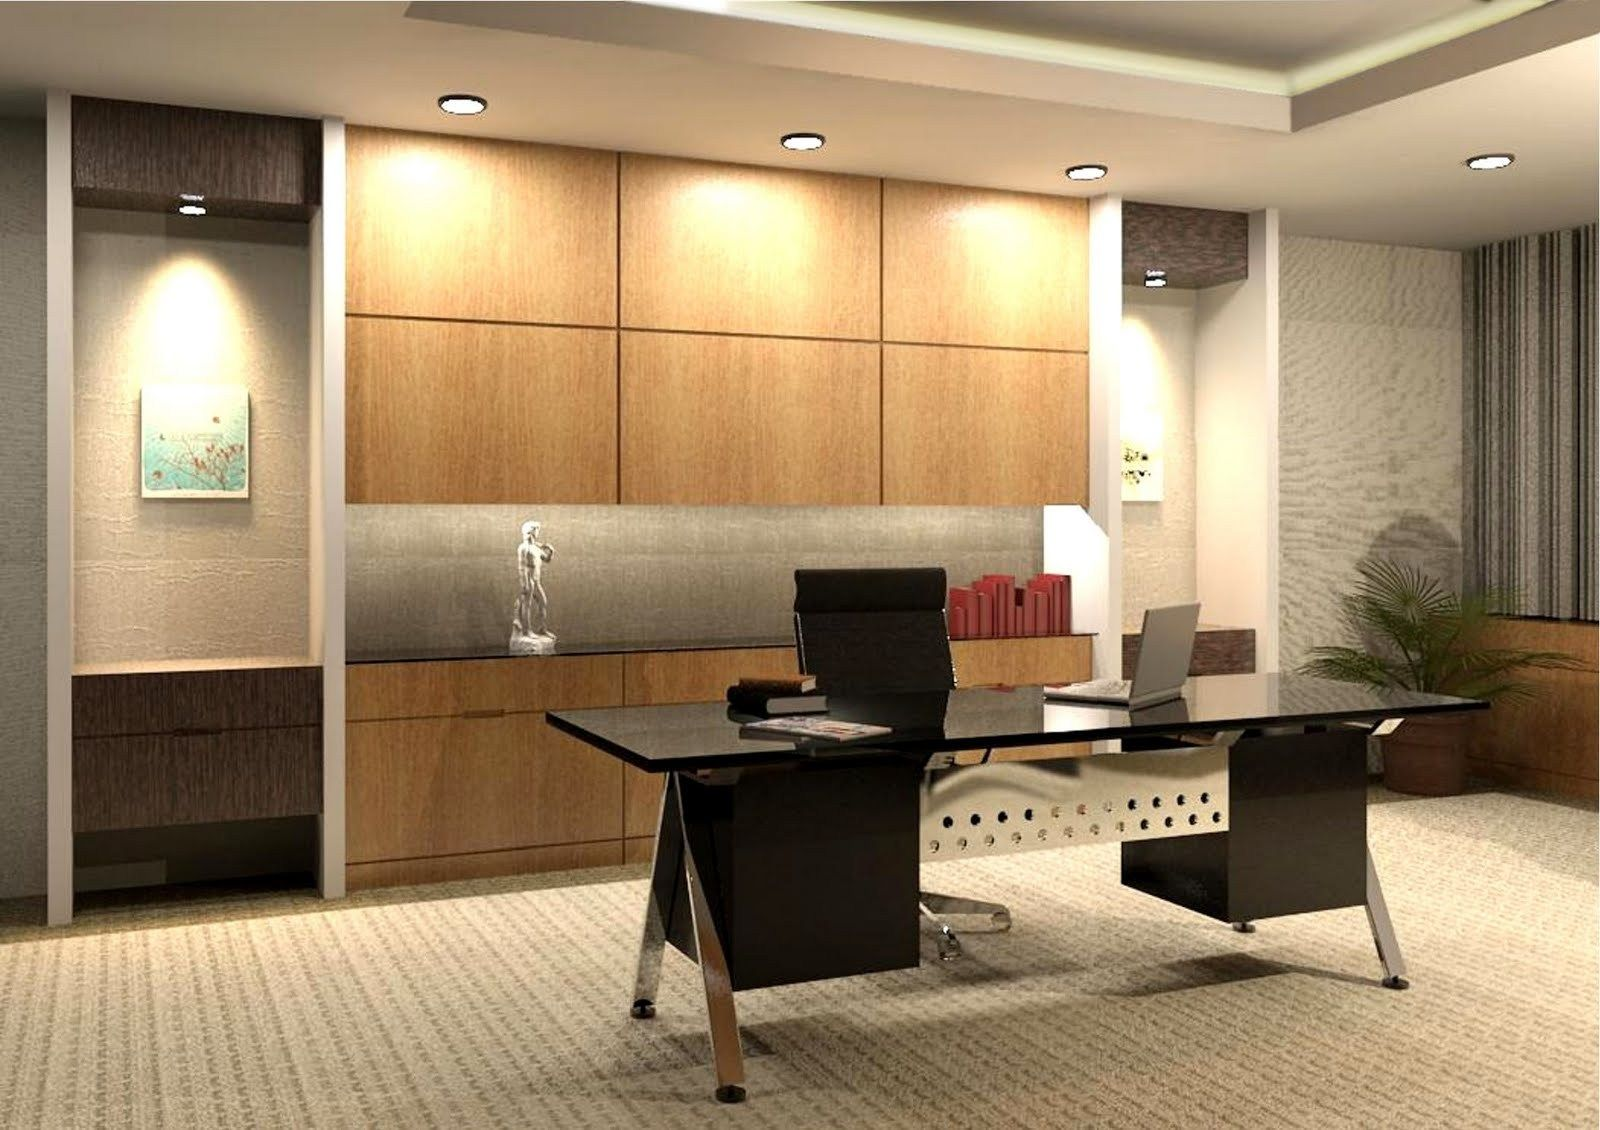 Office Room Interior Personal Office Room Interior Design Photos